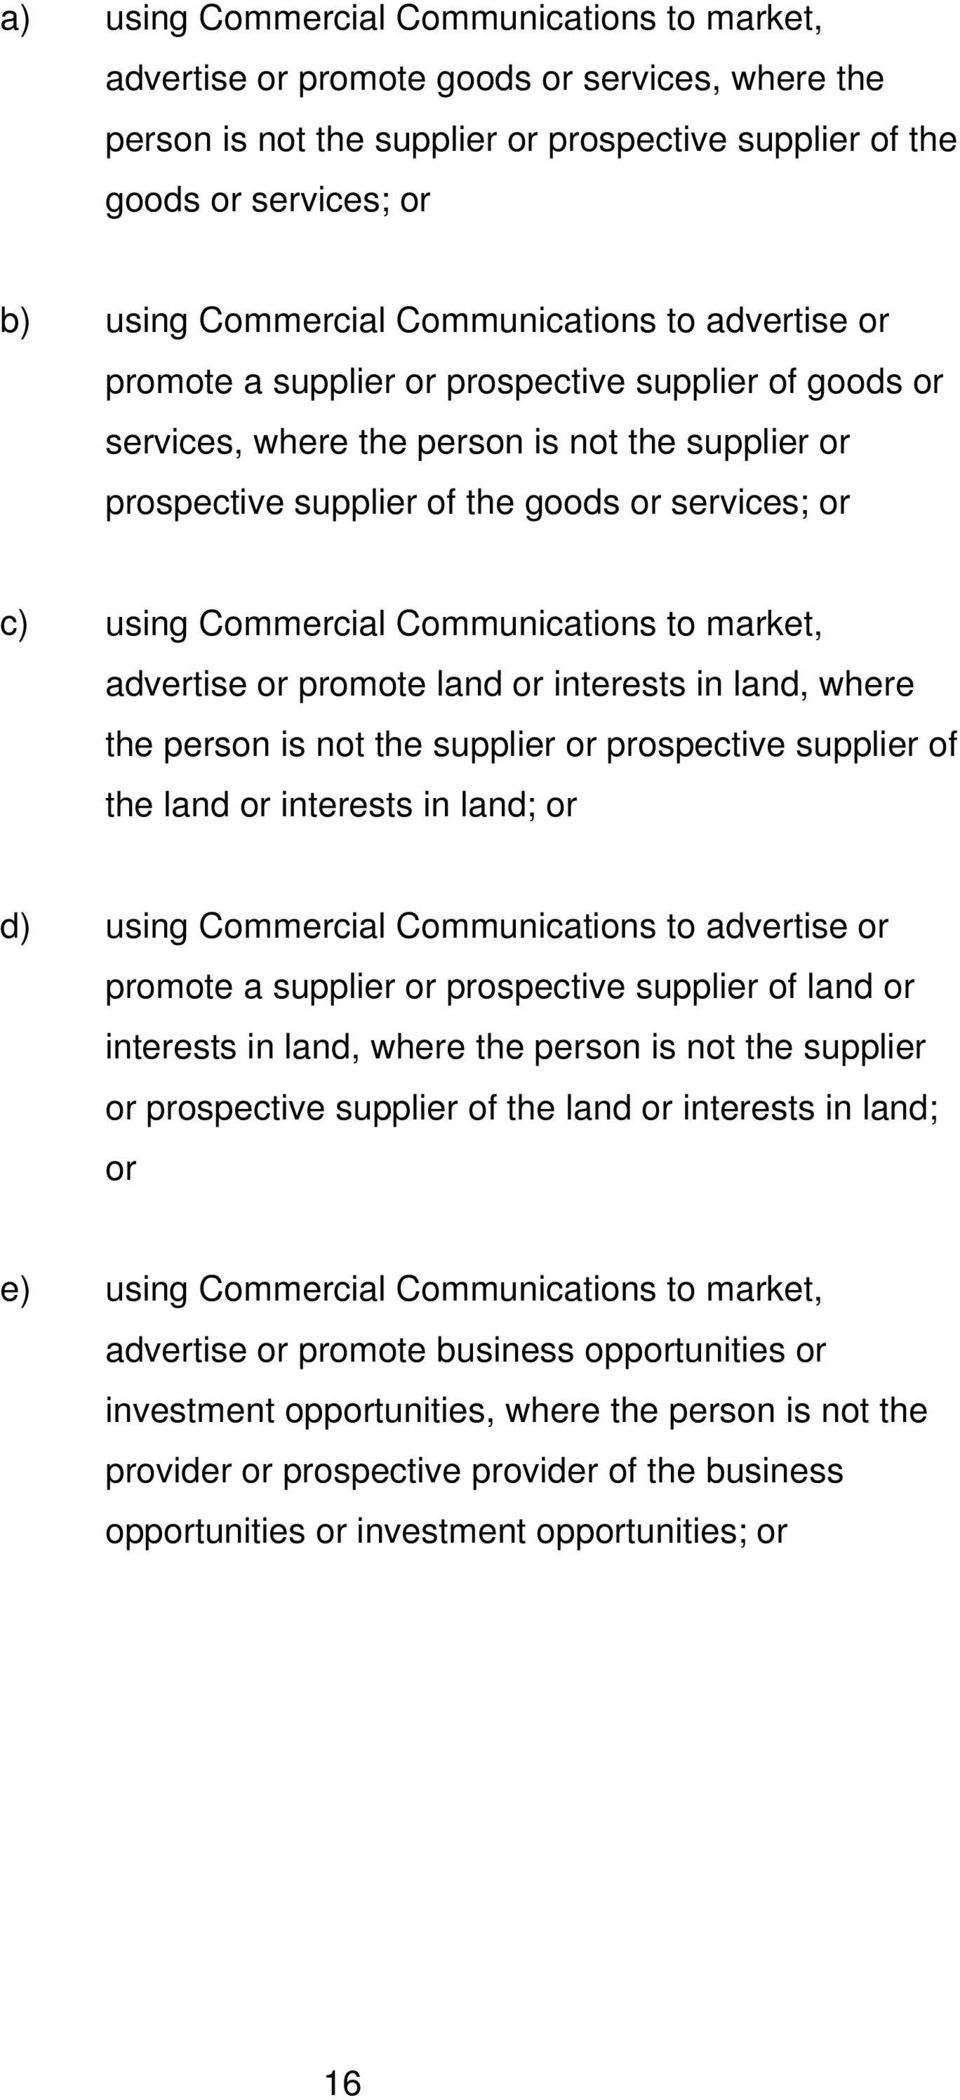 Commercial Communications to market, advertise or promote land or interests in land, where the person is not the supplier or prospective supplier of the land or interests in land; or d) using